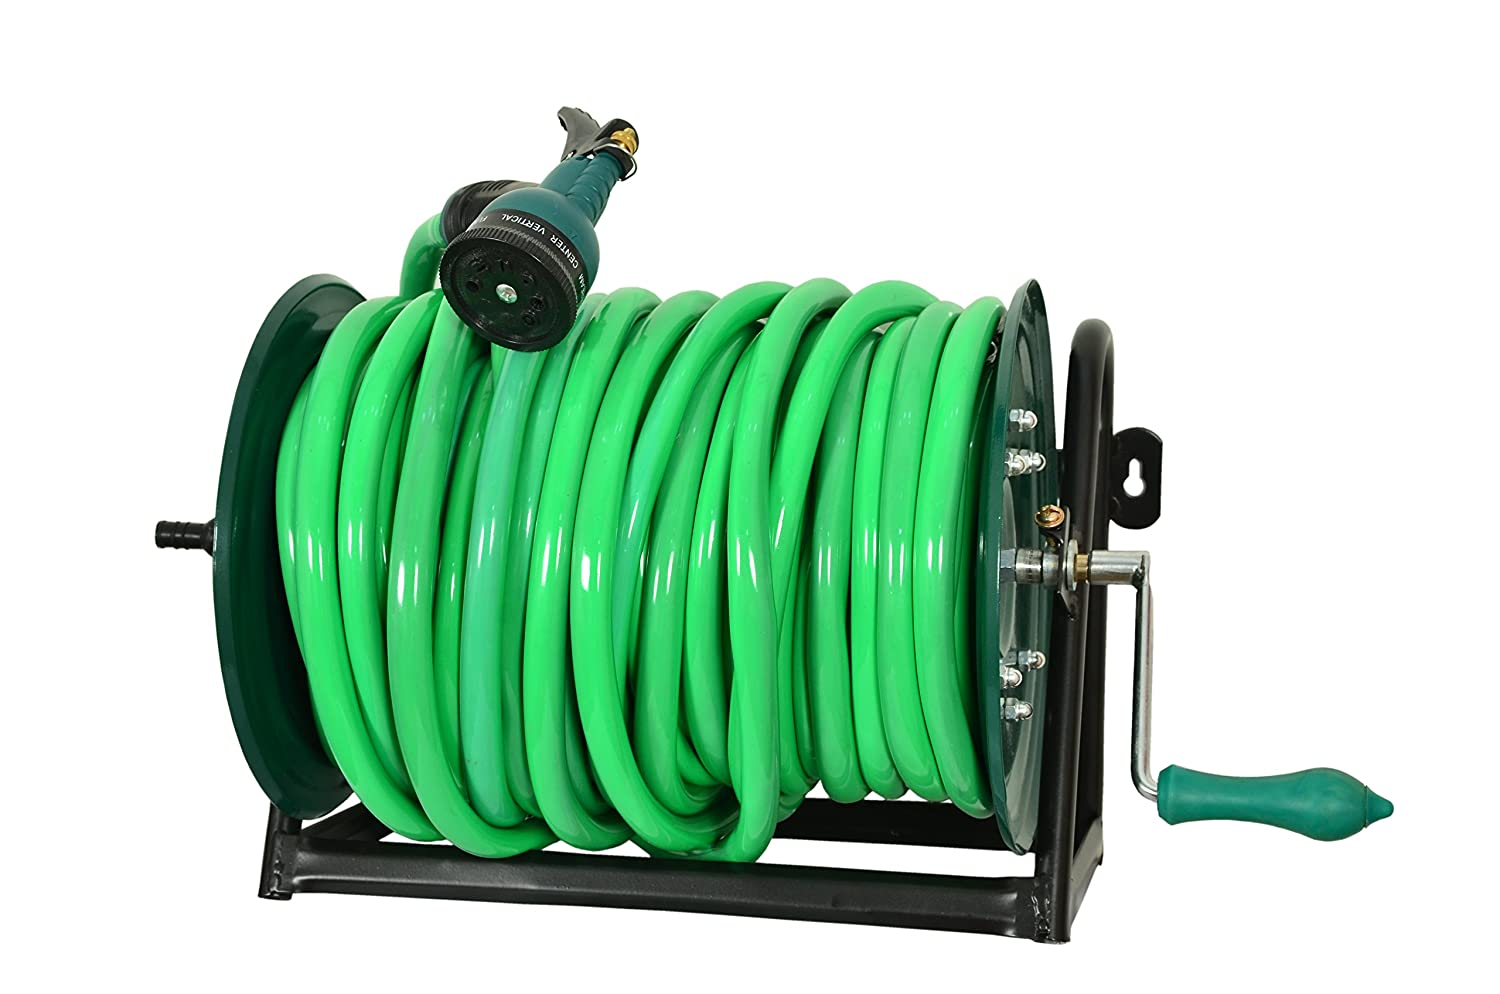 Bth Company Heavy Duty Hose Reel Wall Floor Mounted With Adjustable Arm Guide Garden Appliances Green Amazon In Garden Outdoors